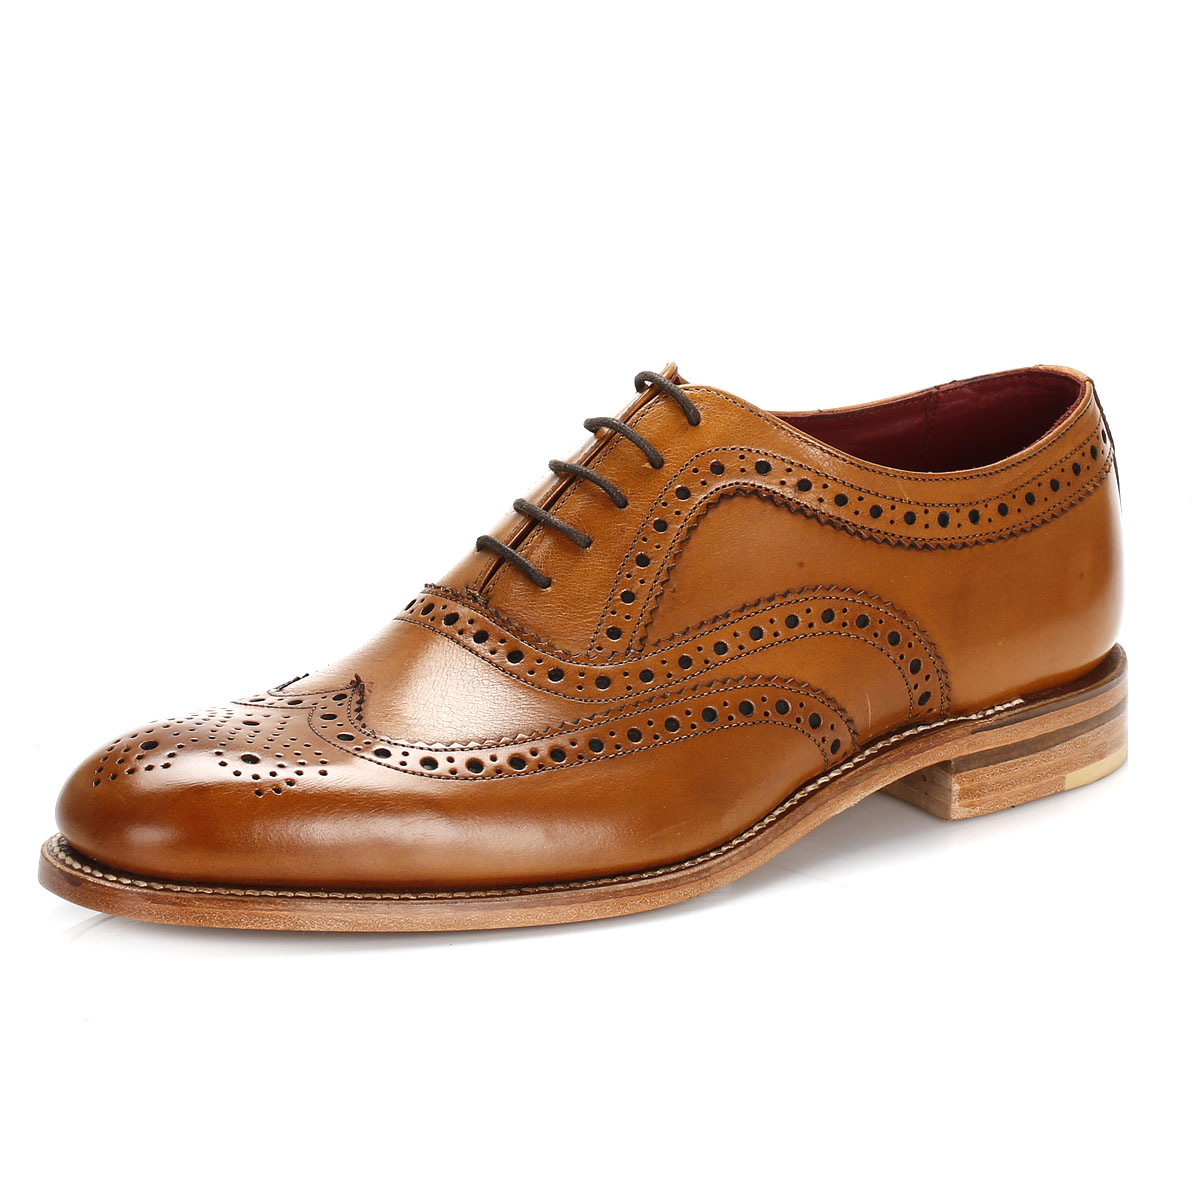 Loake Mens Fearnley Tan Leather Brogue Shoe